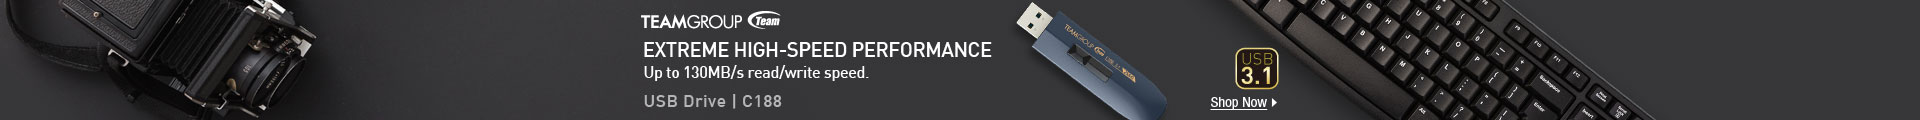 Extreme High-Speed Performance